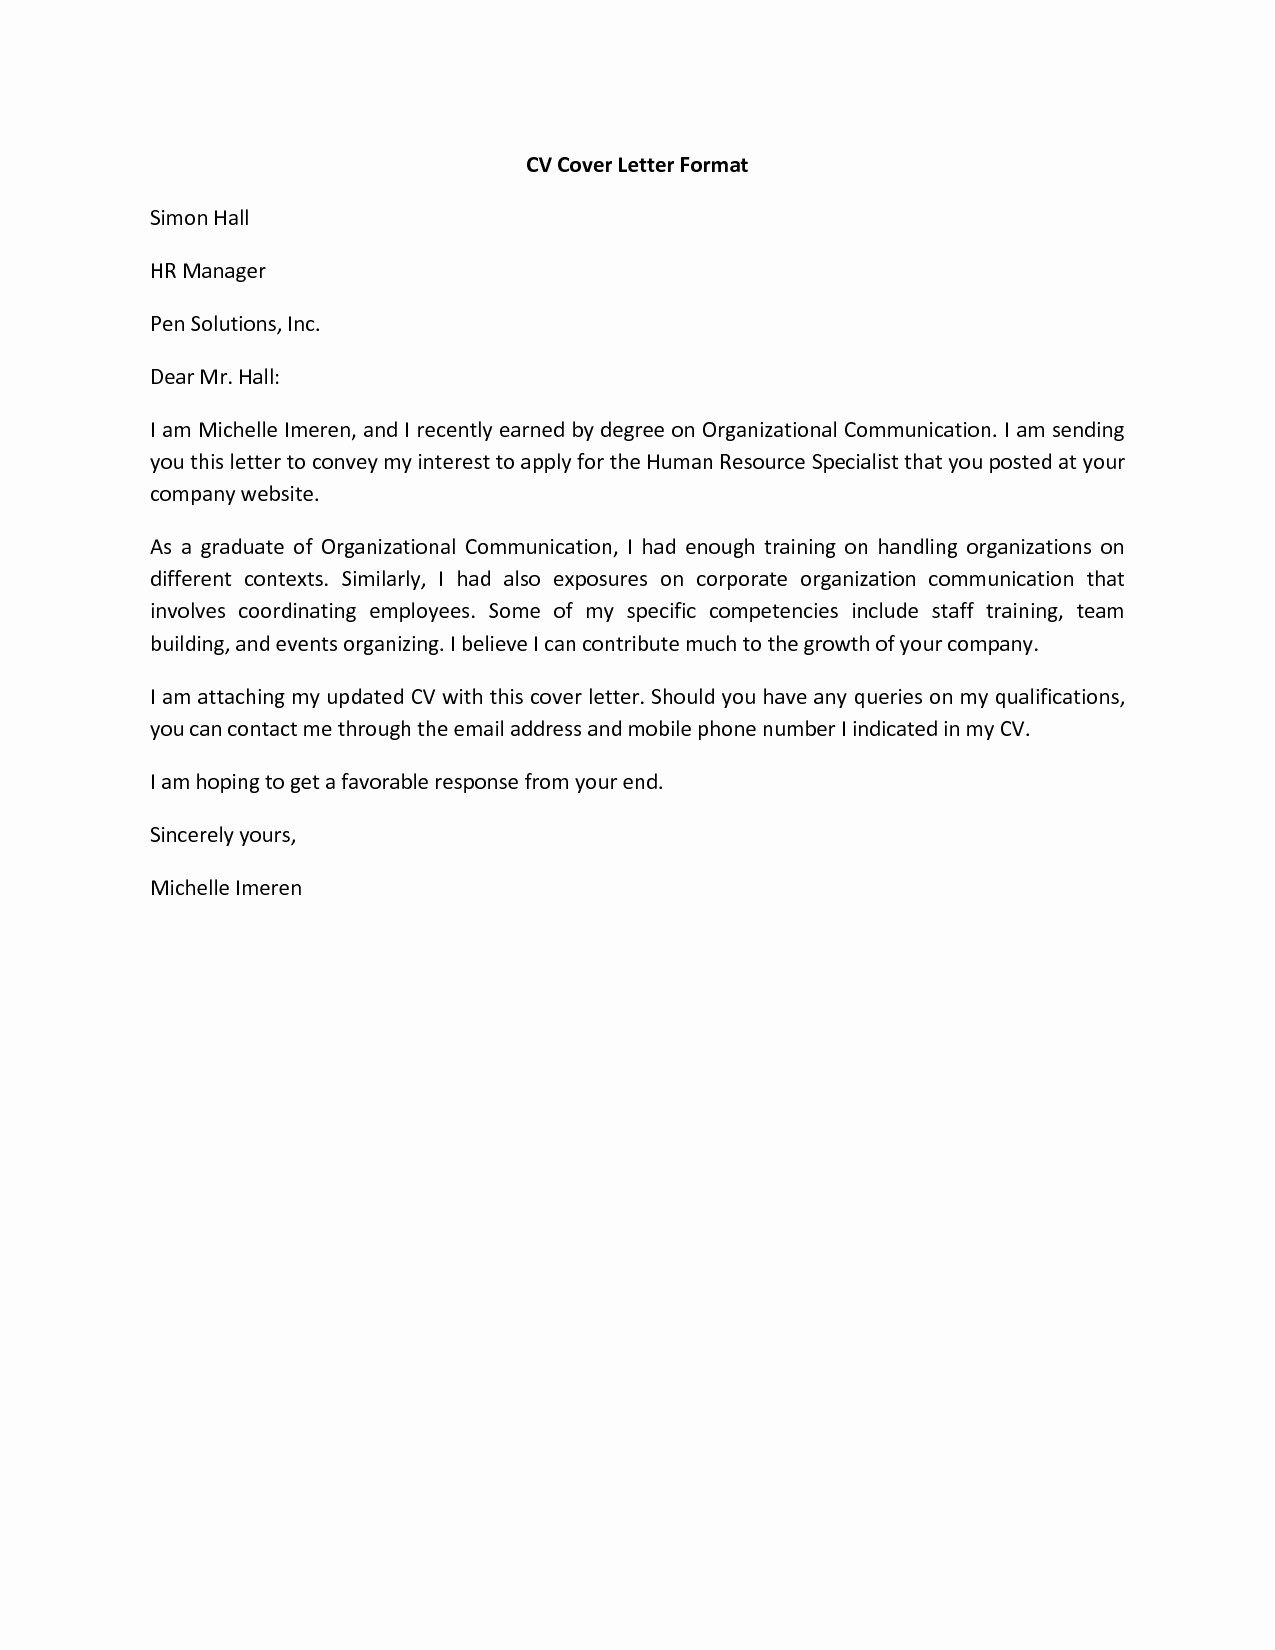 Resume and Cover Letter format Unique Basic Cover Letter for A Resume